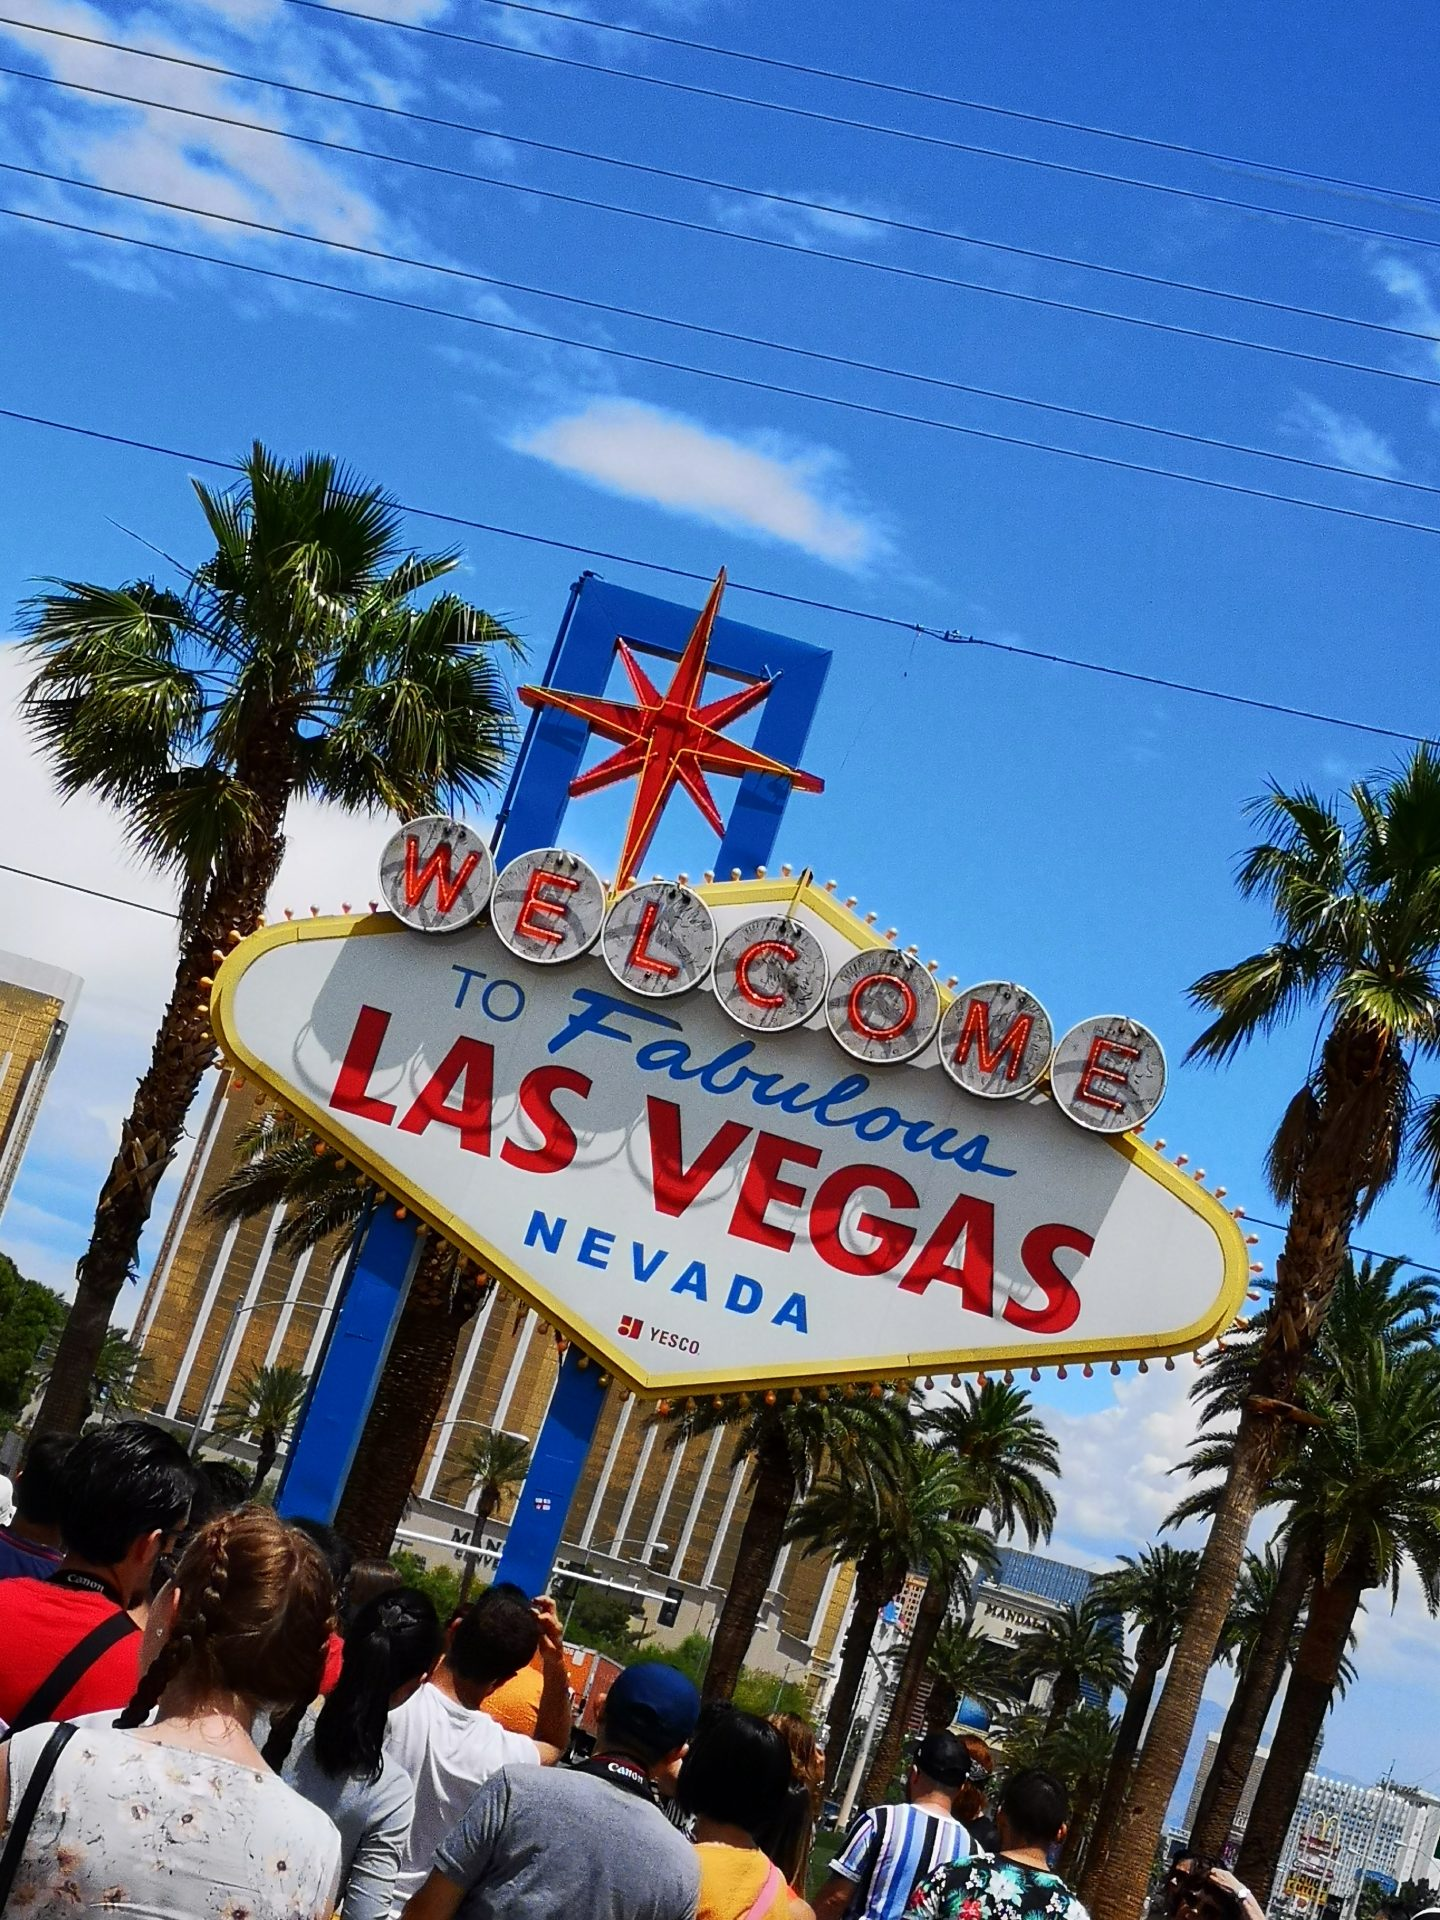 Our trip to Las Vegas and Los Angeles – Part 1